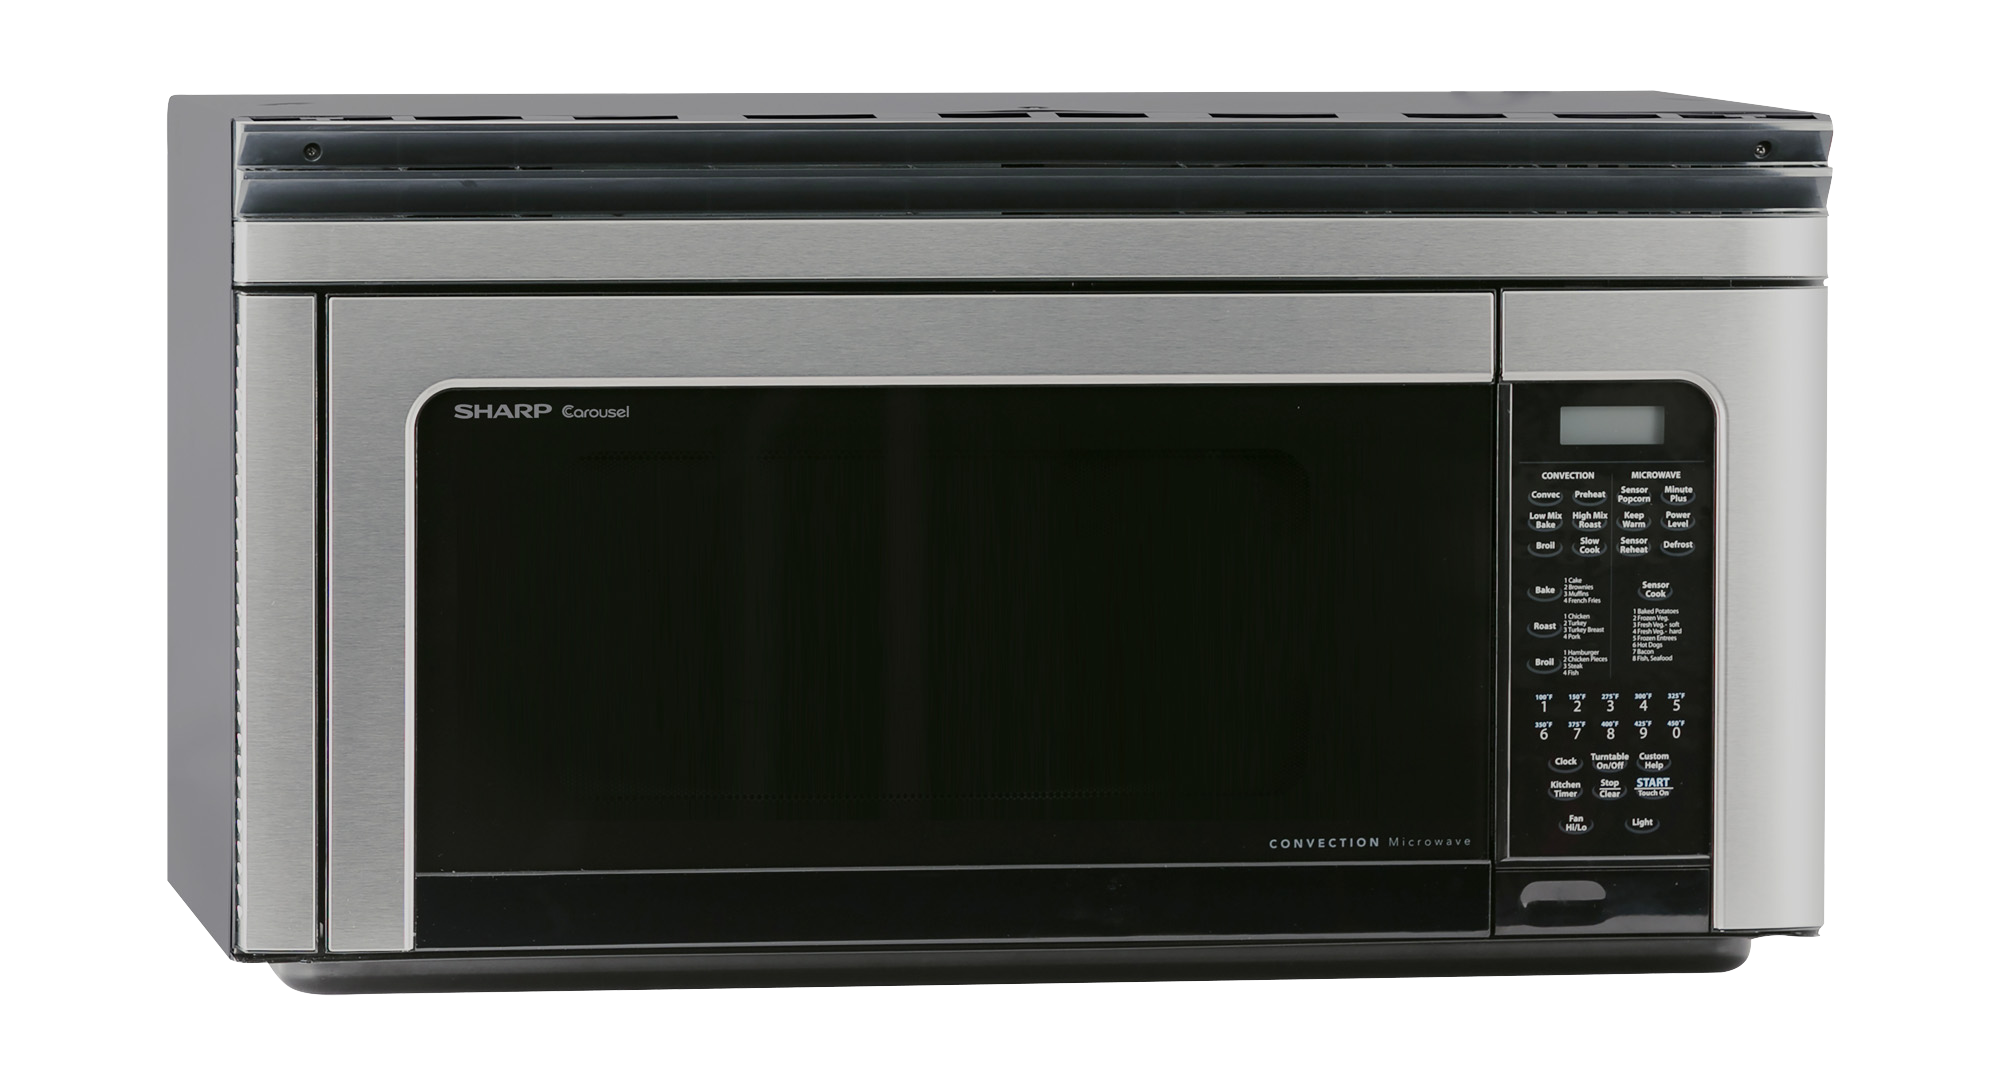 sharp carousel microwave convection oven manual good owner guide rh blogrepairguide today Sharp Carousel Convection Microwave Cookbook Sharp Carousel II Microwave Convection Oven R 7H80